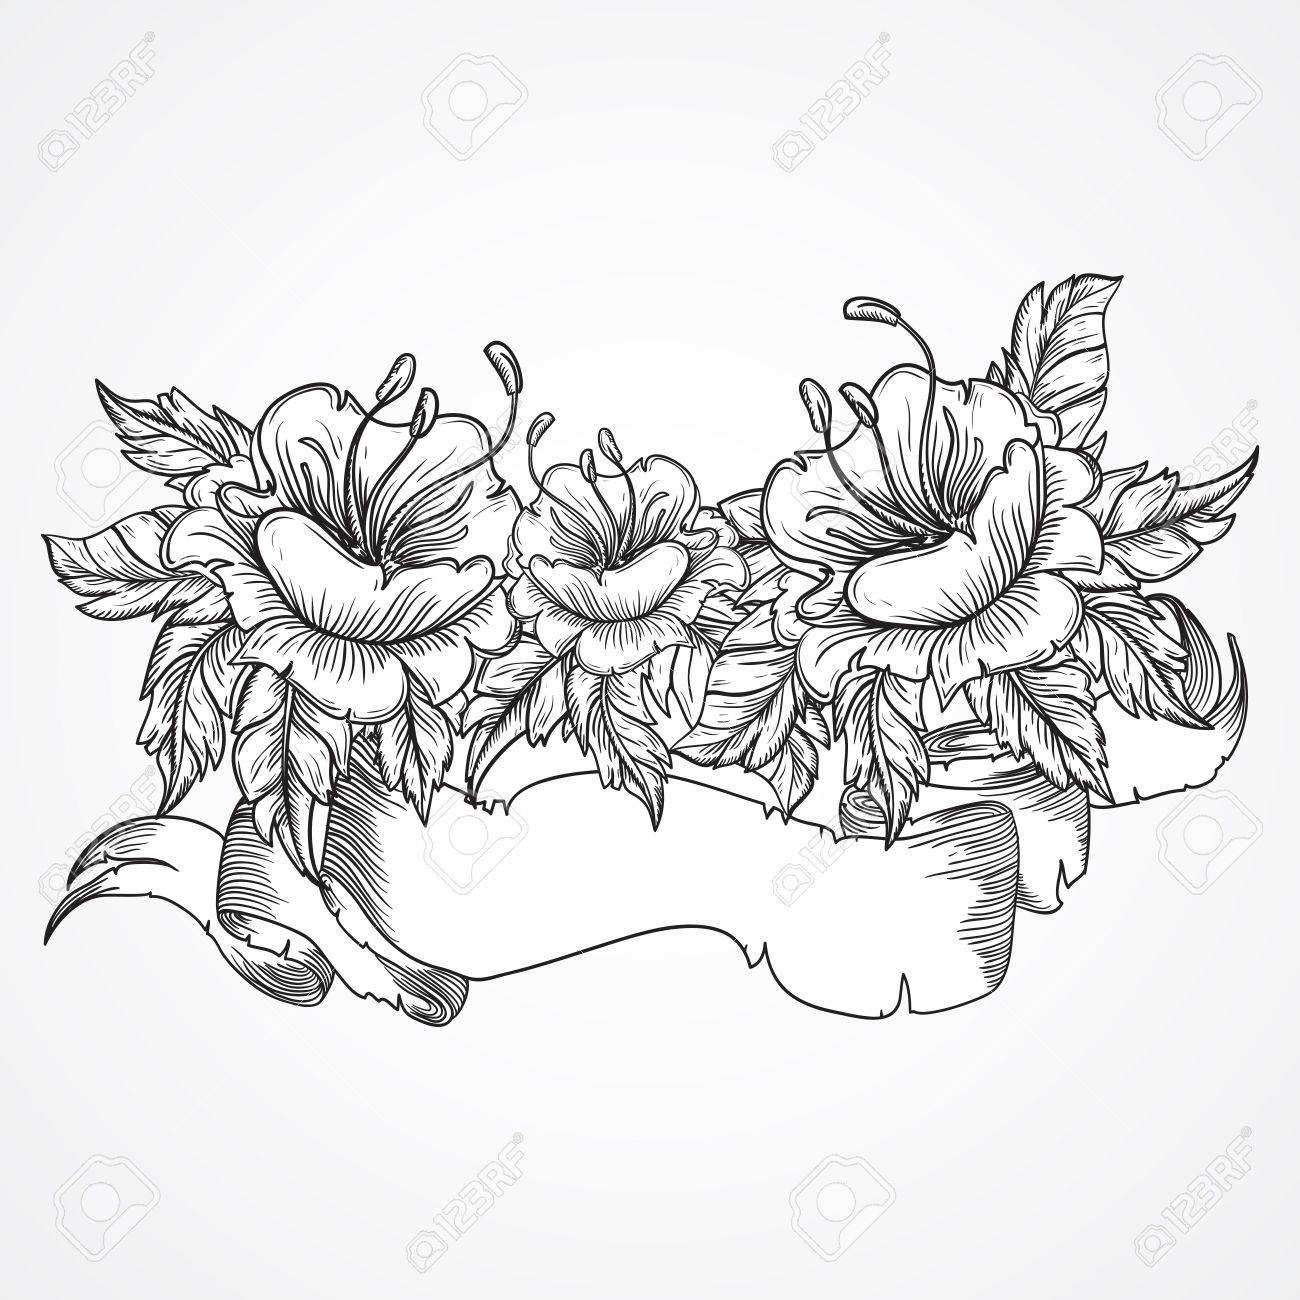 Vintage Floral Highly Detailed Hand Drawn Bouquet Of Flowers Royalty Free Cliparts Vectors And Stock Illustration Image 44082937